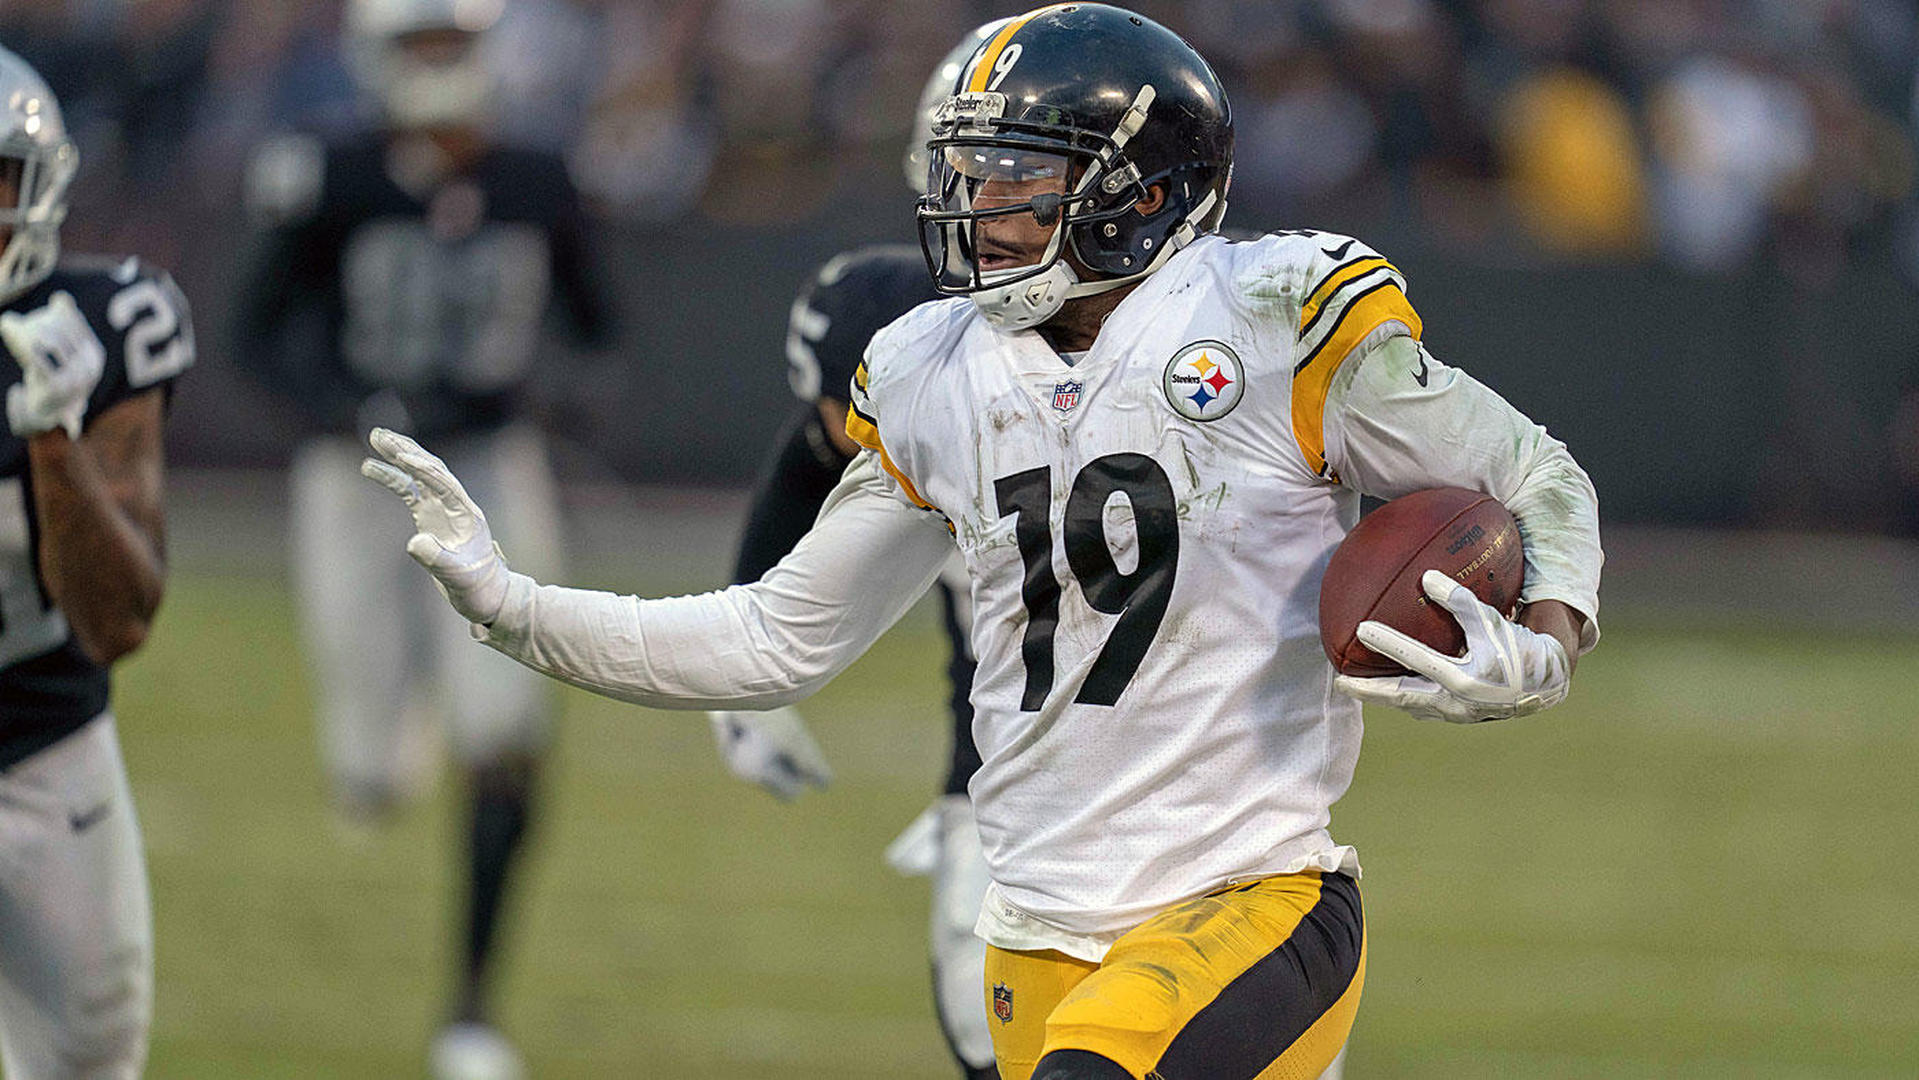 Fantasy Football: James Conner, JuJu Smith-Schuster ready for starring roles in Pittsburgh